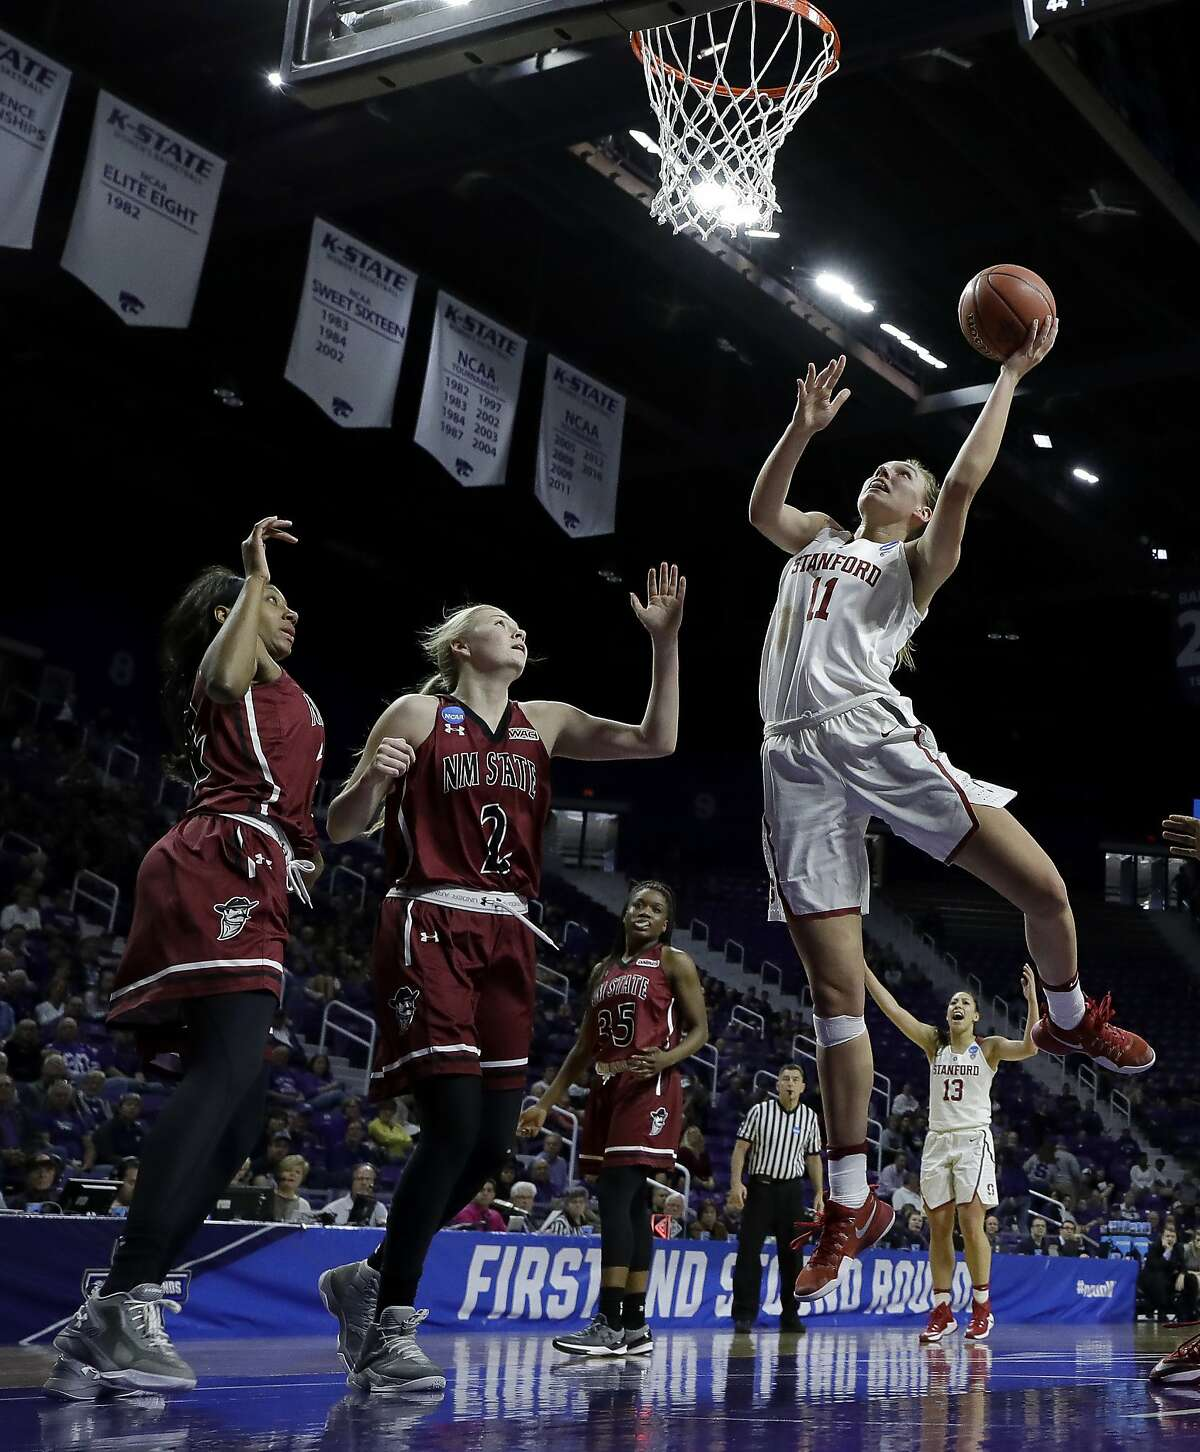 Stanford's Alanna Smith (11) gets past New Mexico State's Brooke Salas (2) to put up a shot during the second half of a first-round game in the NCAA women's college basketball tournament Saturday, March 18, 2017, in Manhattan, Kan. Stanford won 72-64. (AP Photo/Charlie Riedel)